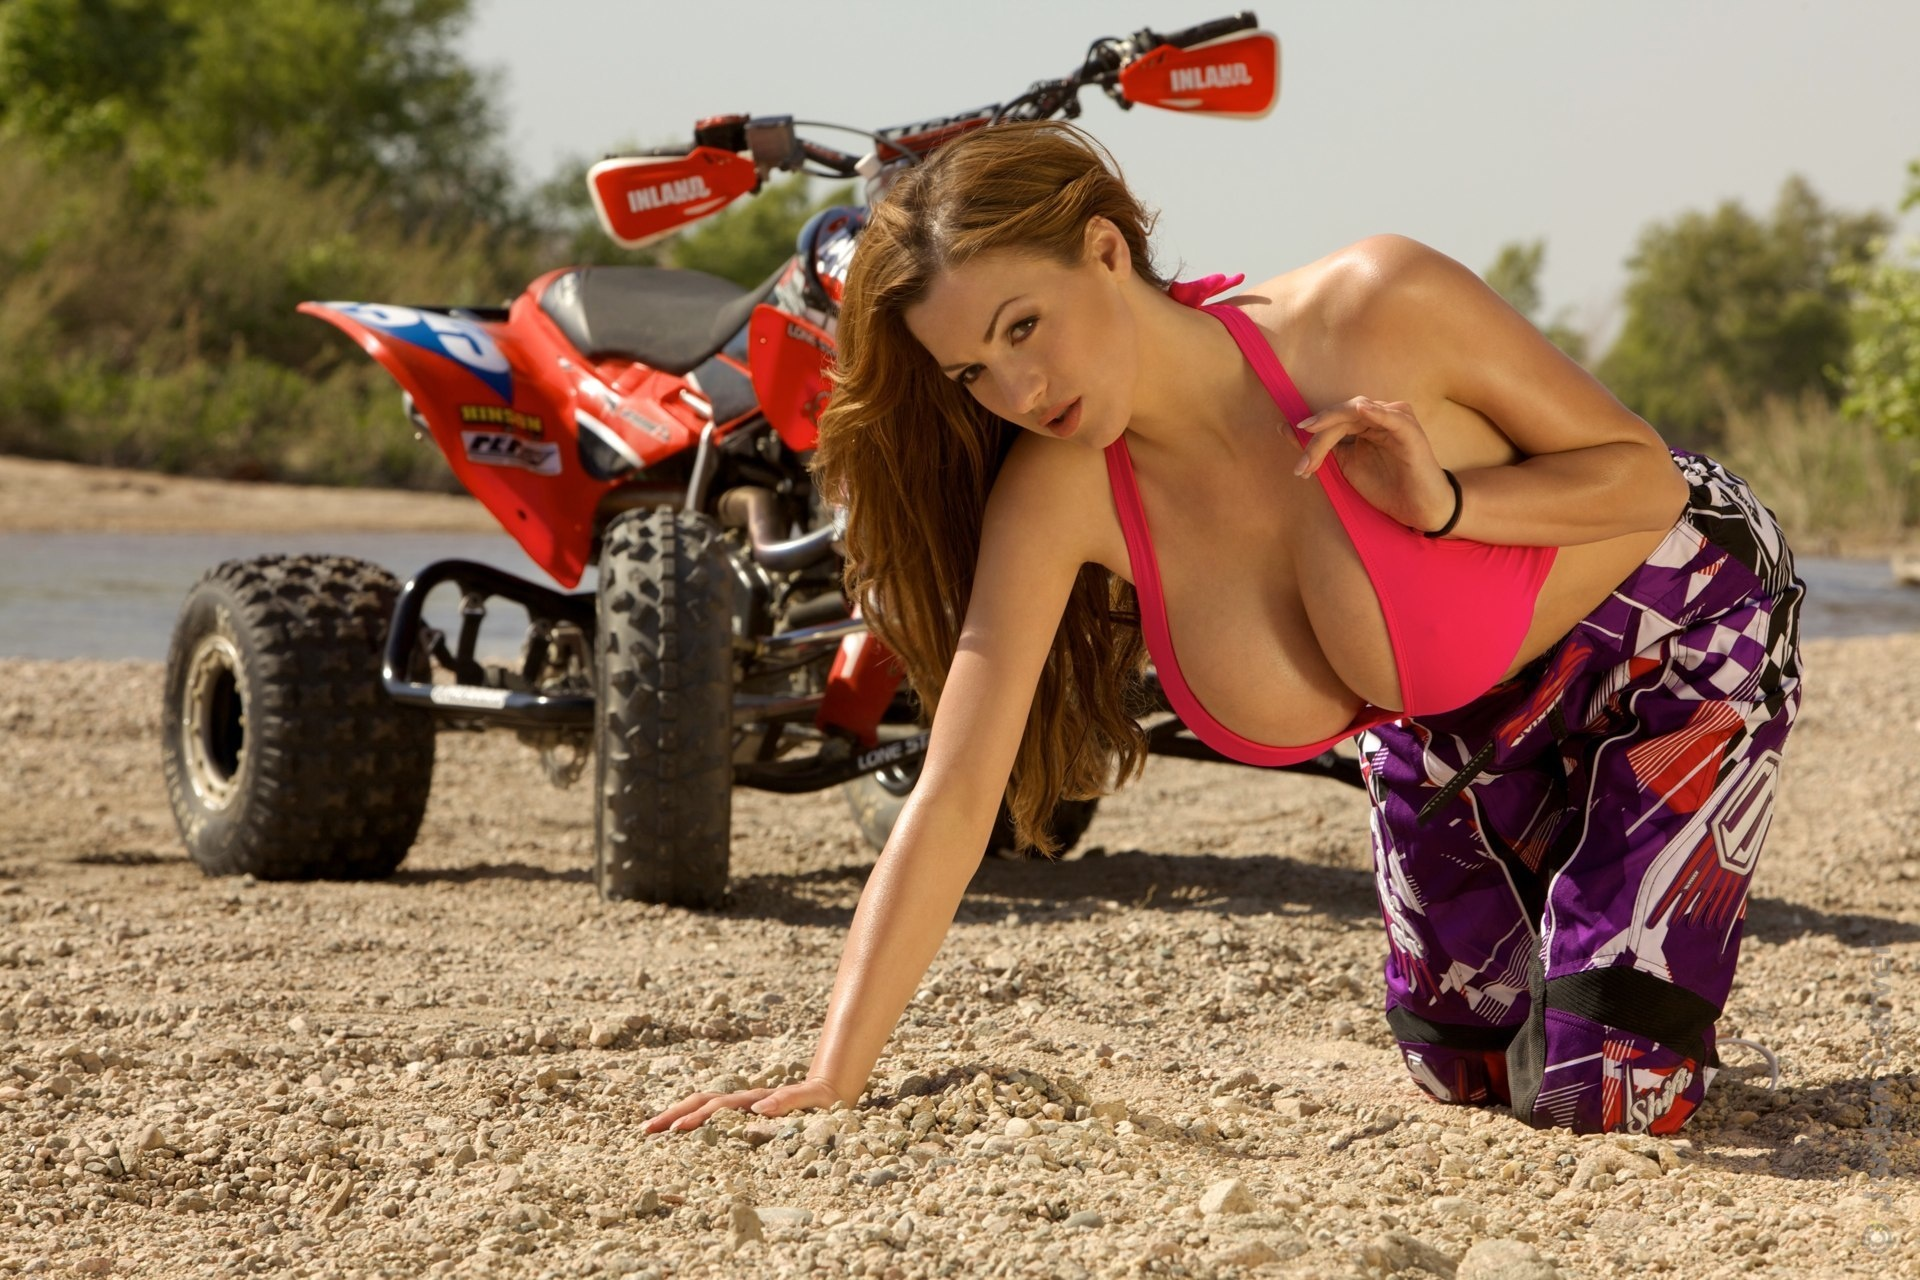 Are sexy naked girls on dirt bikes something is